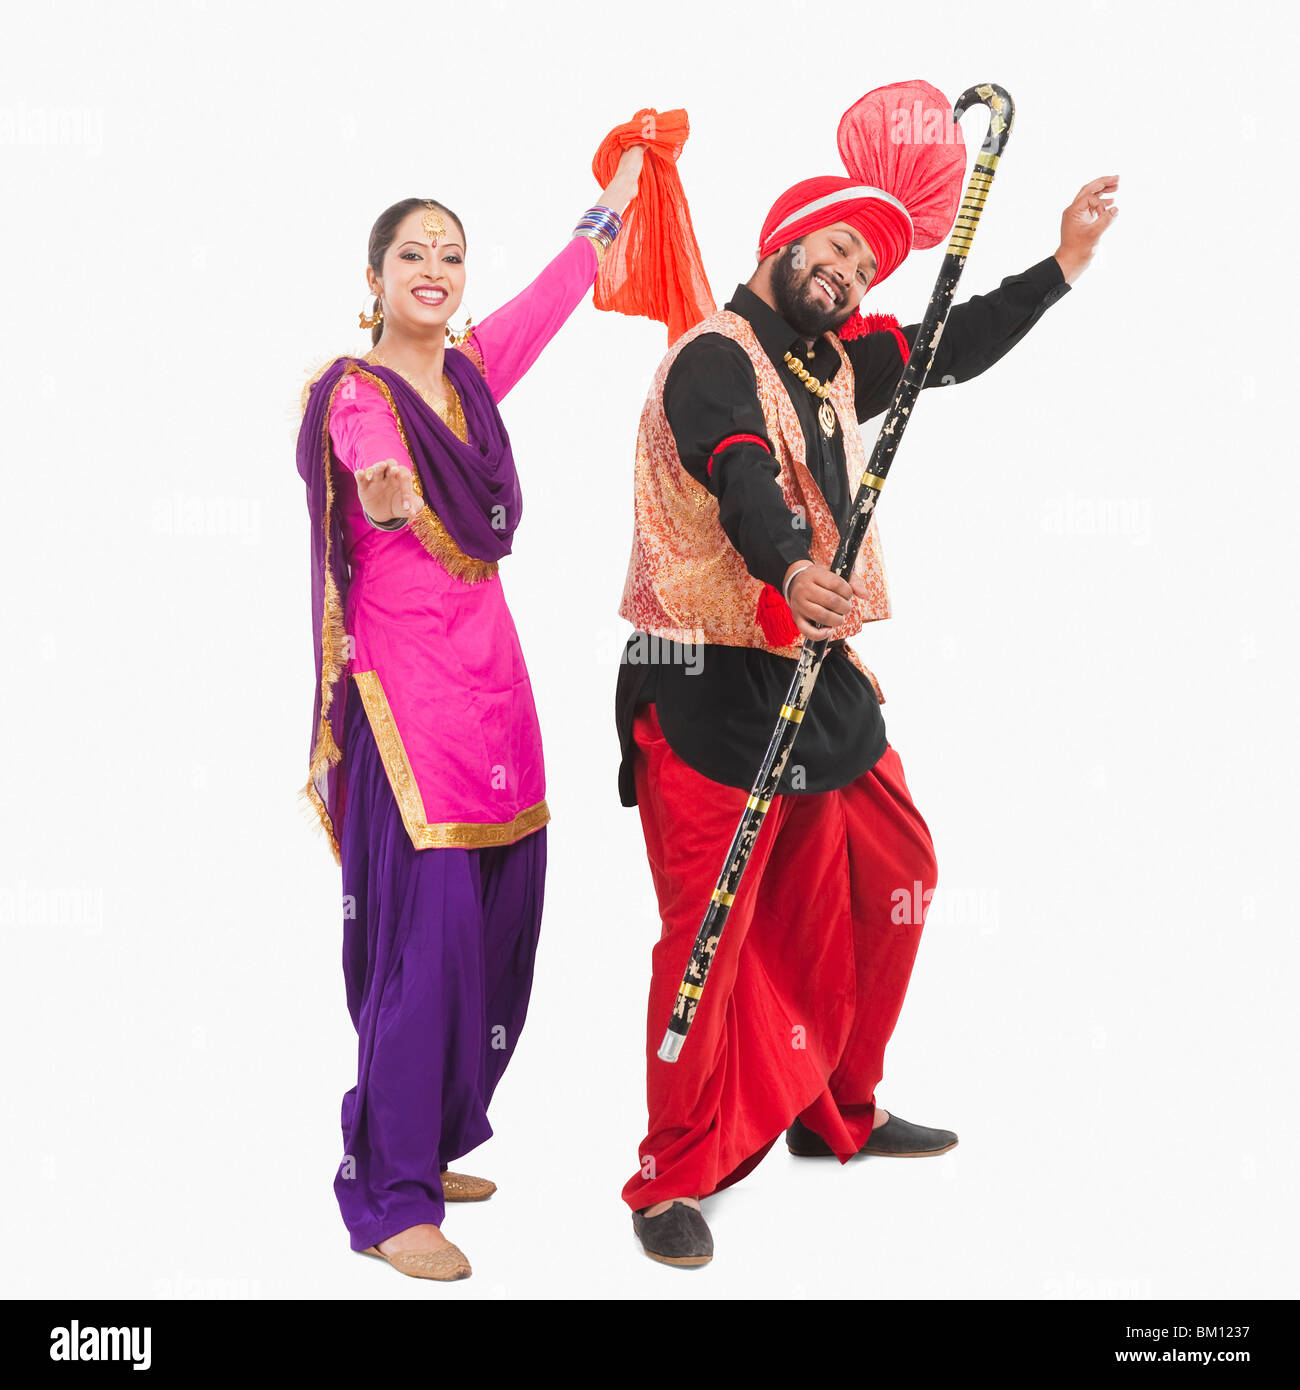 1a1608313 Bhangra the traditional folk dance from Punjab in North India - Stock Image